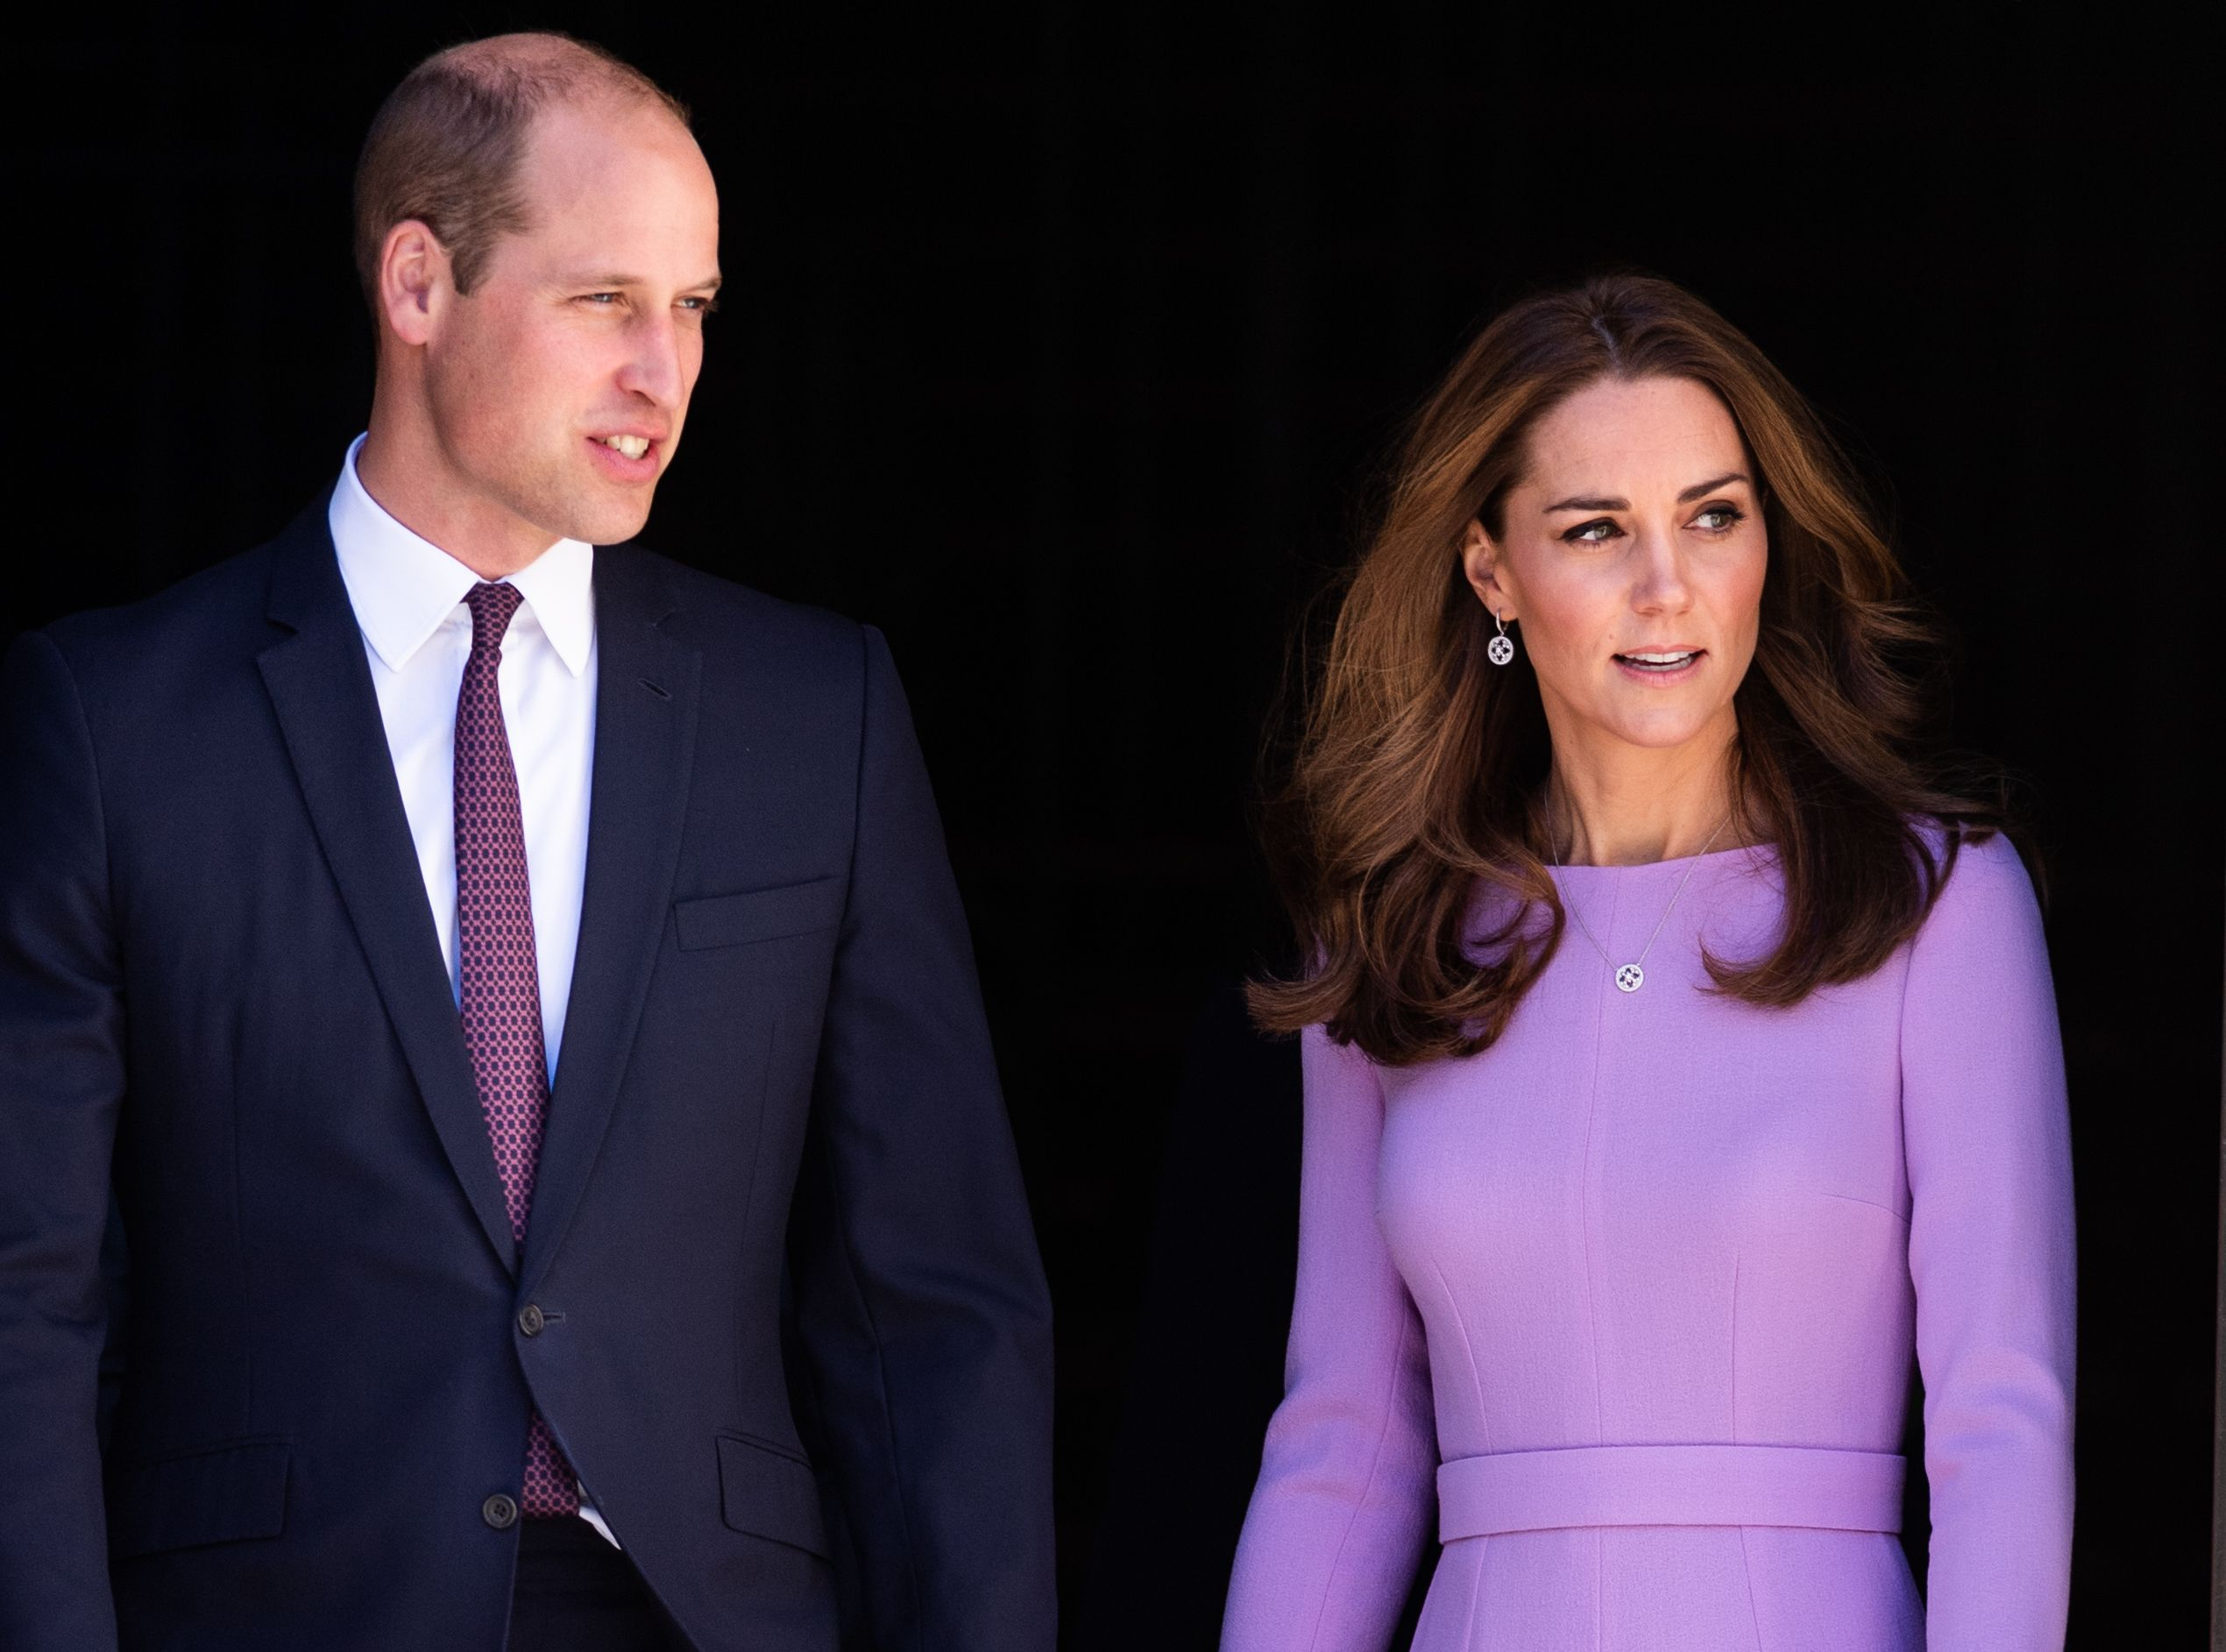 Kensington Palace Puts Out Rare Statement in Response to Kate Middleton 'Tatler' Reports